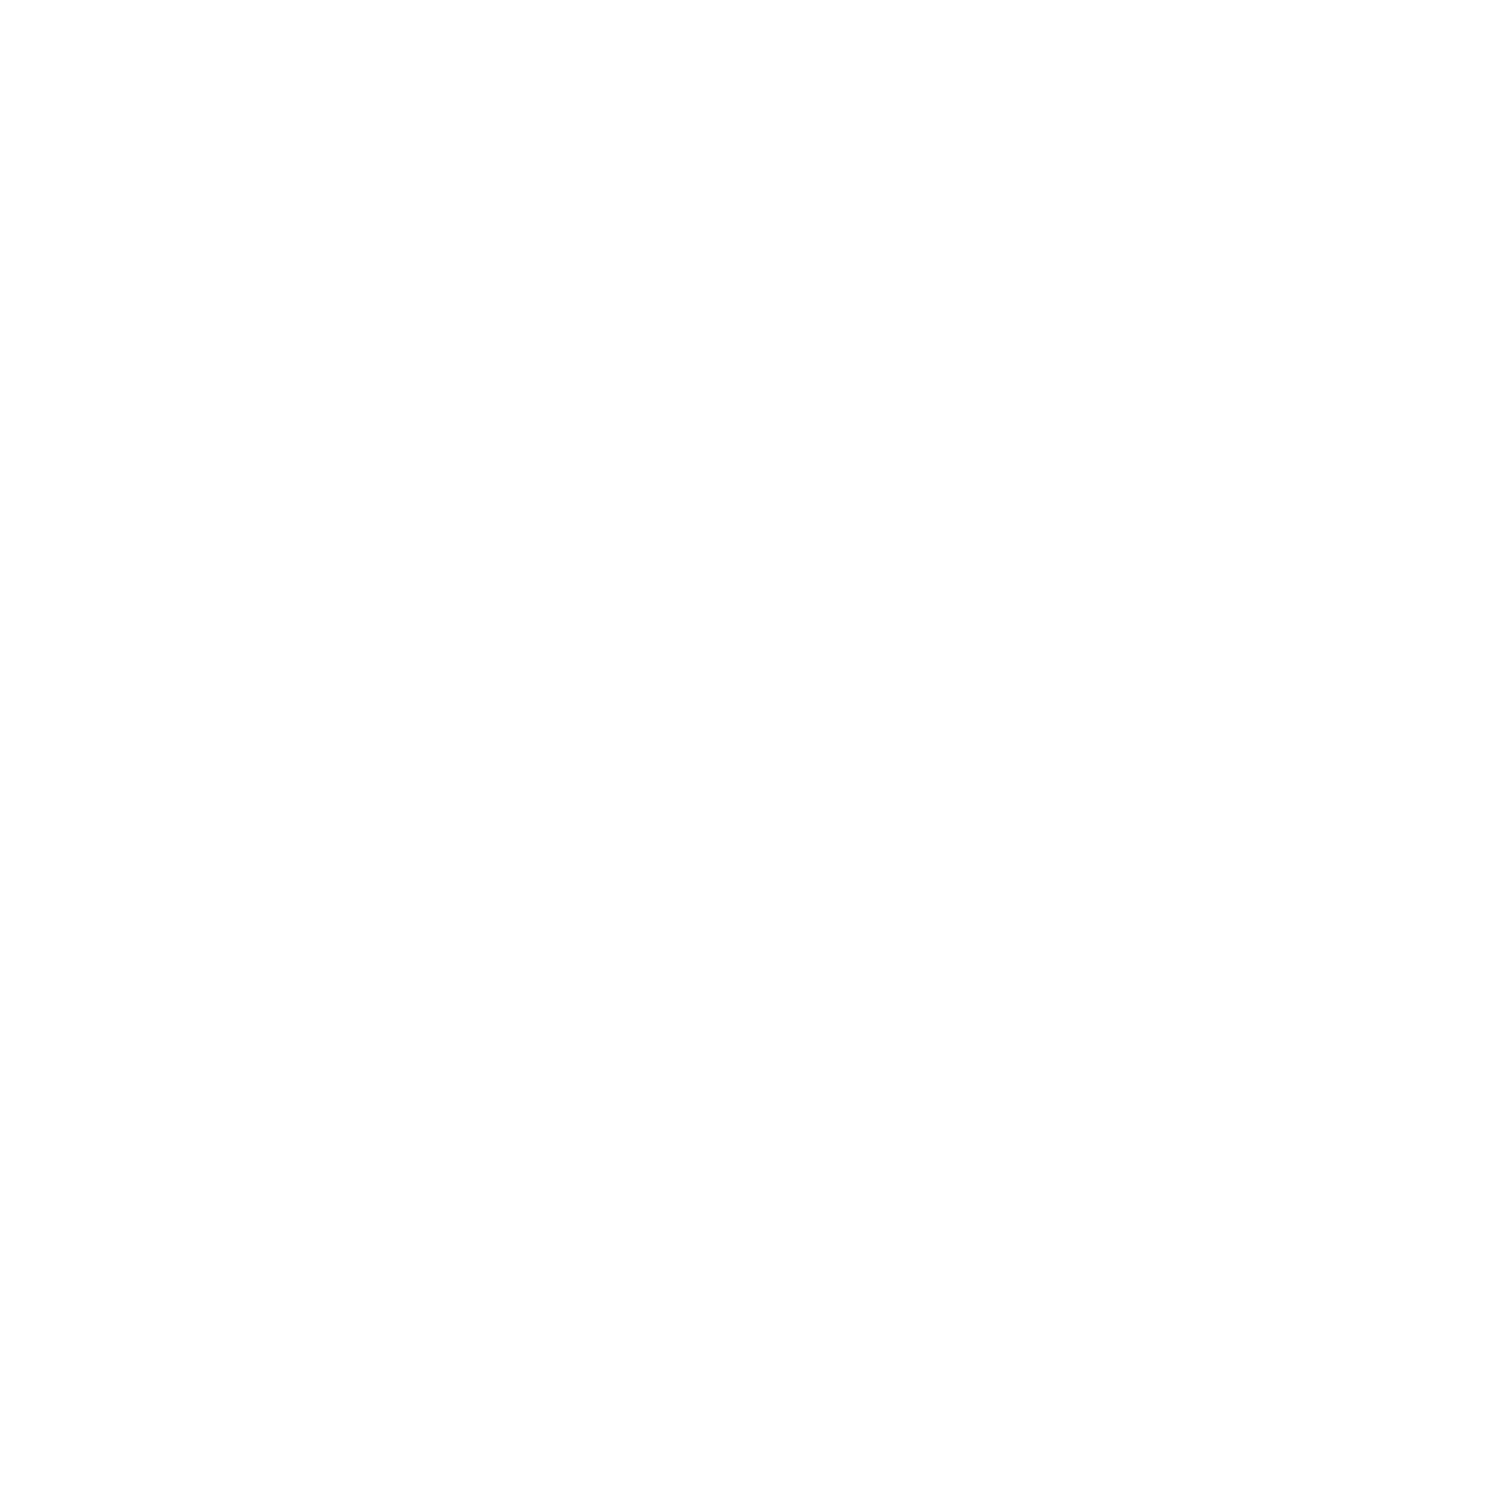 Michigan Academy of Folk Music